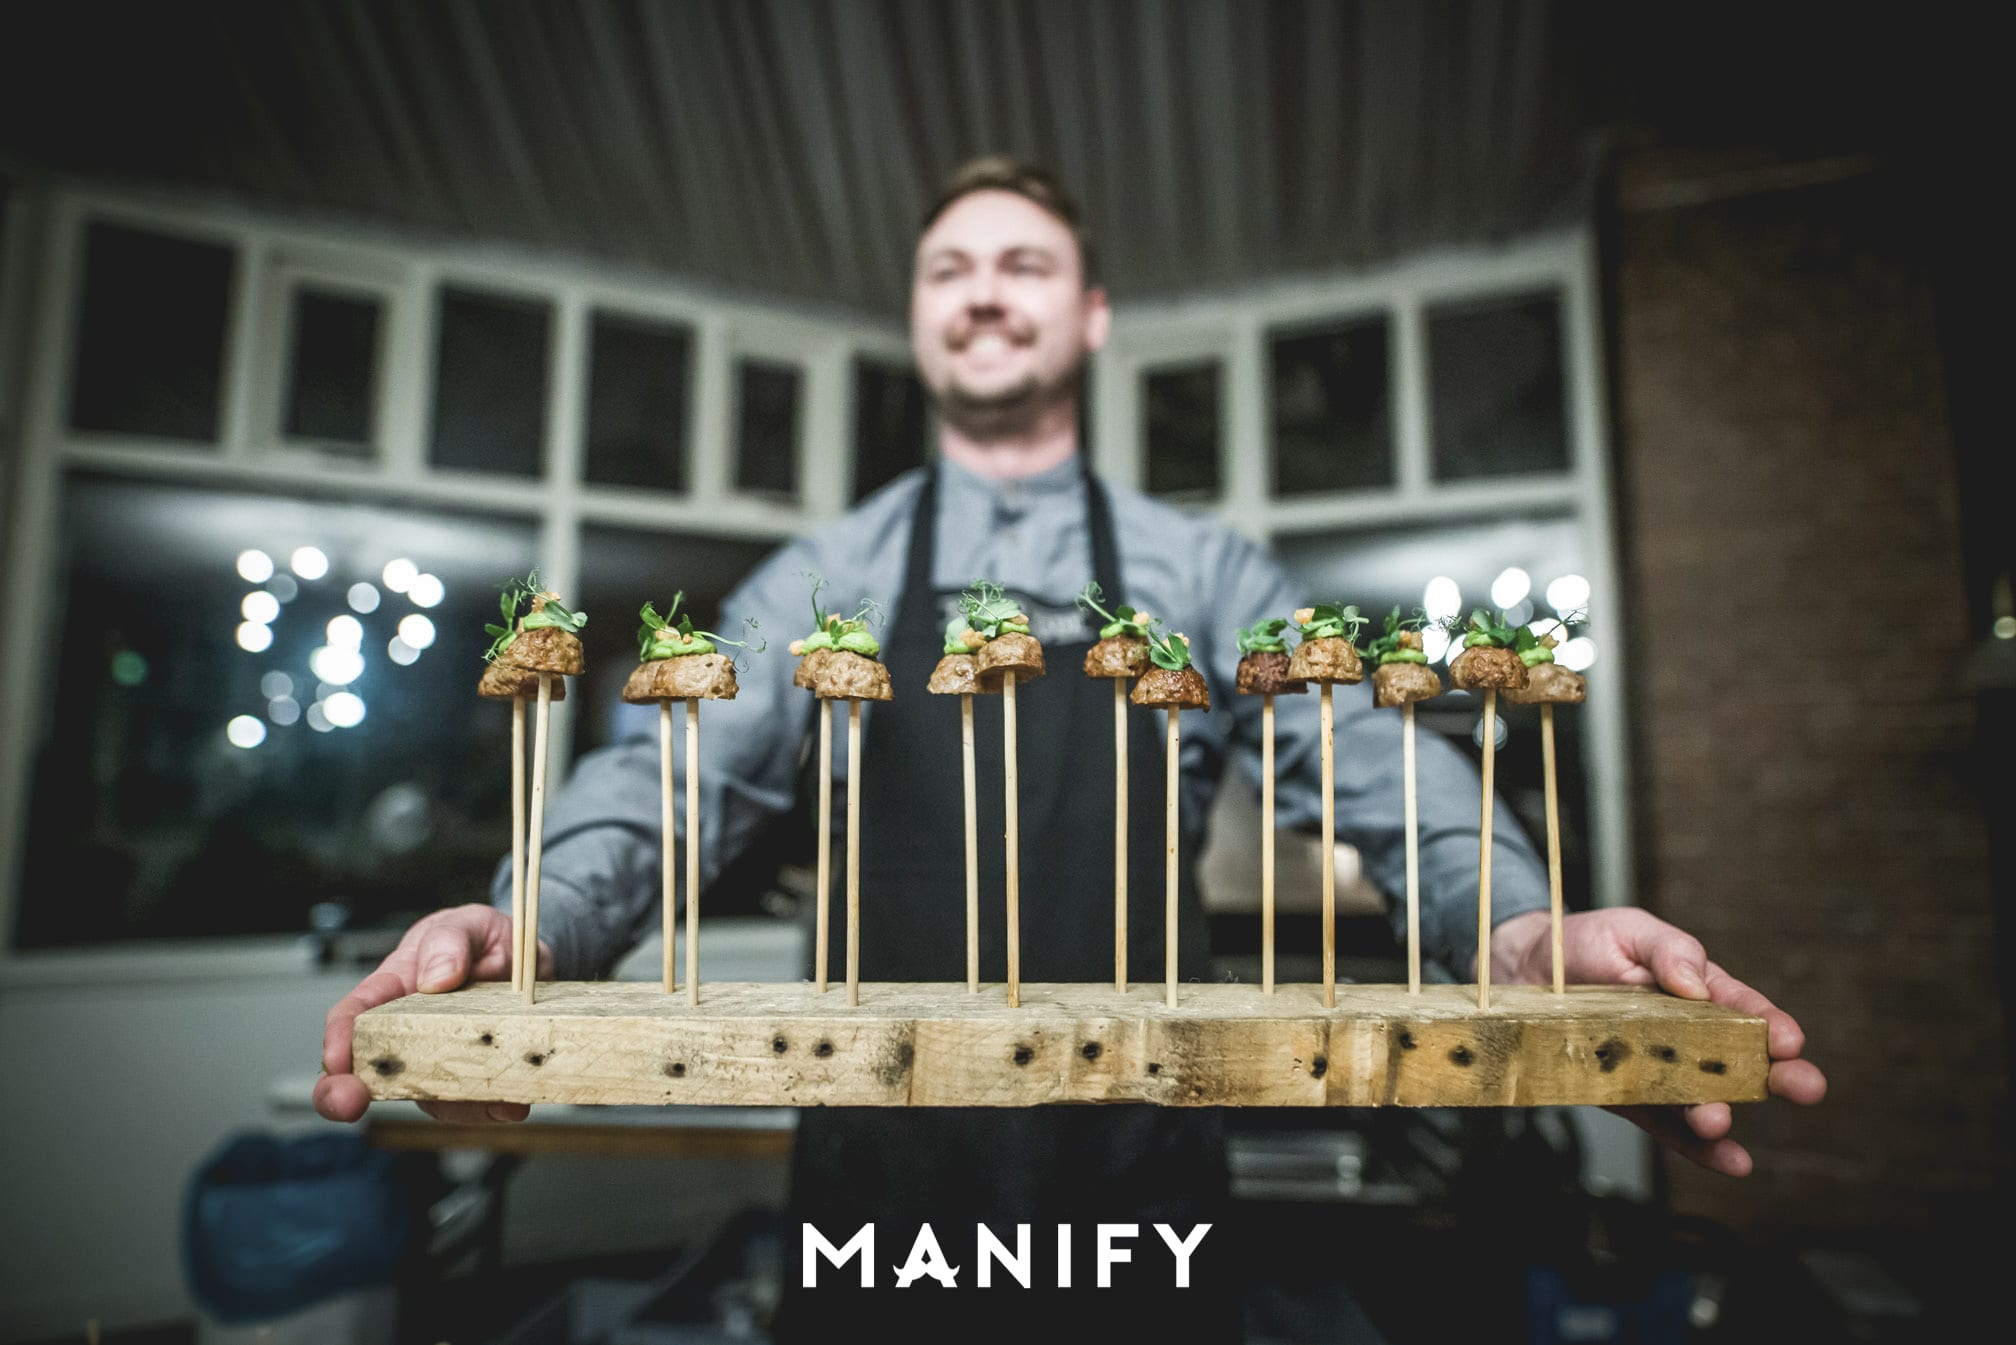 MANIFY_Out_of_office-Orangerie-06-12-19_WM-124-manify